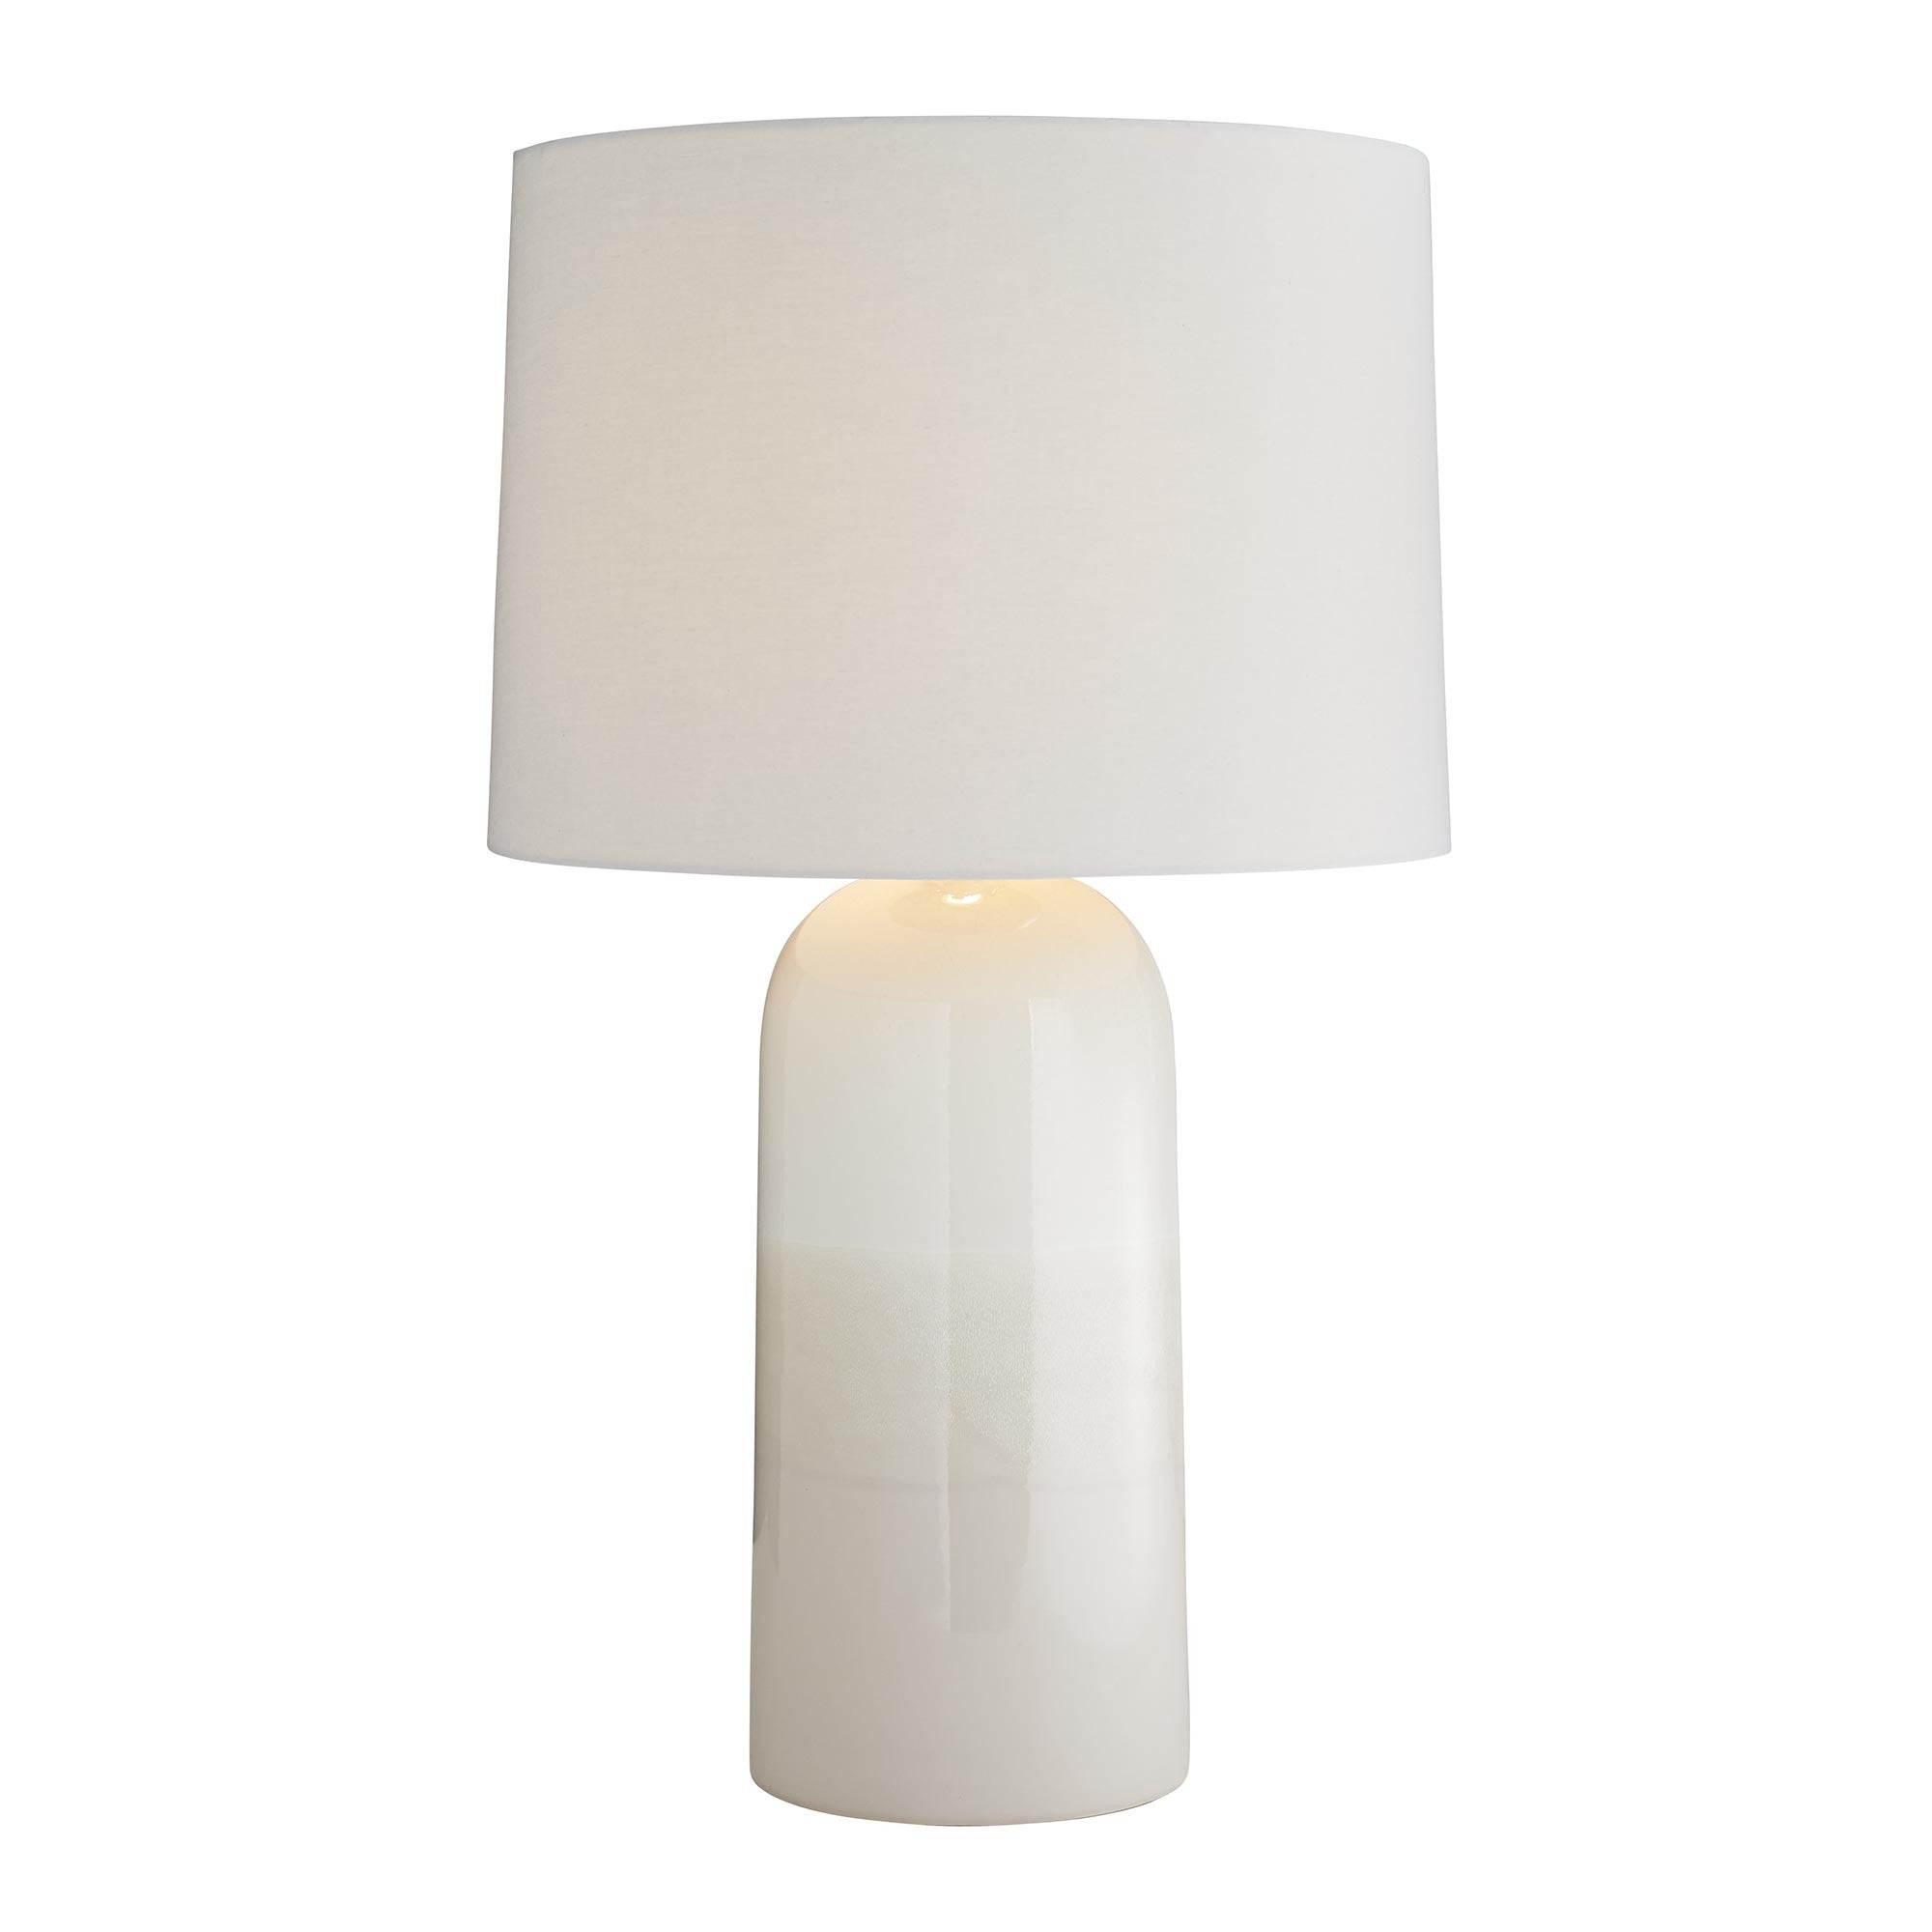 Serene Table Lamp